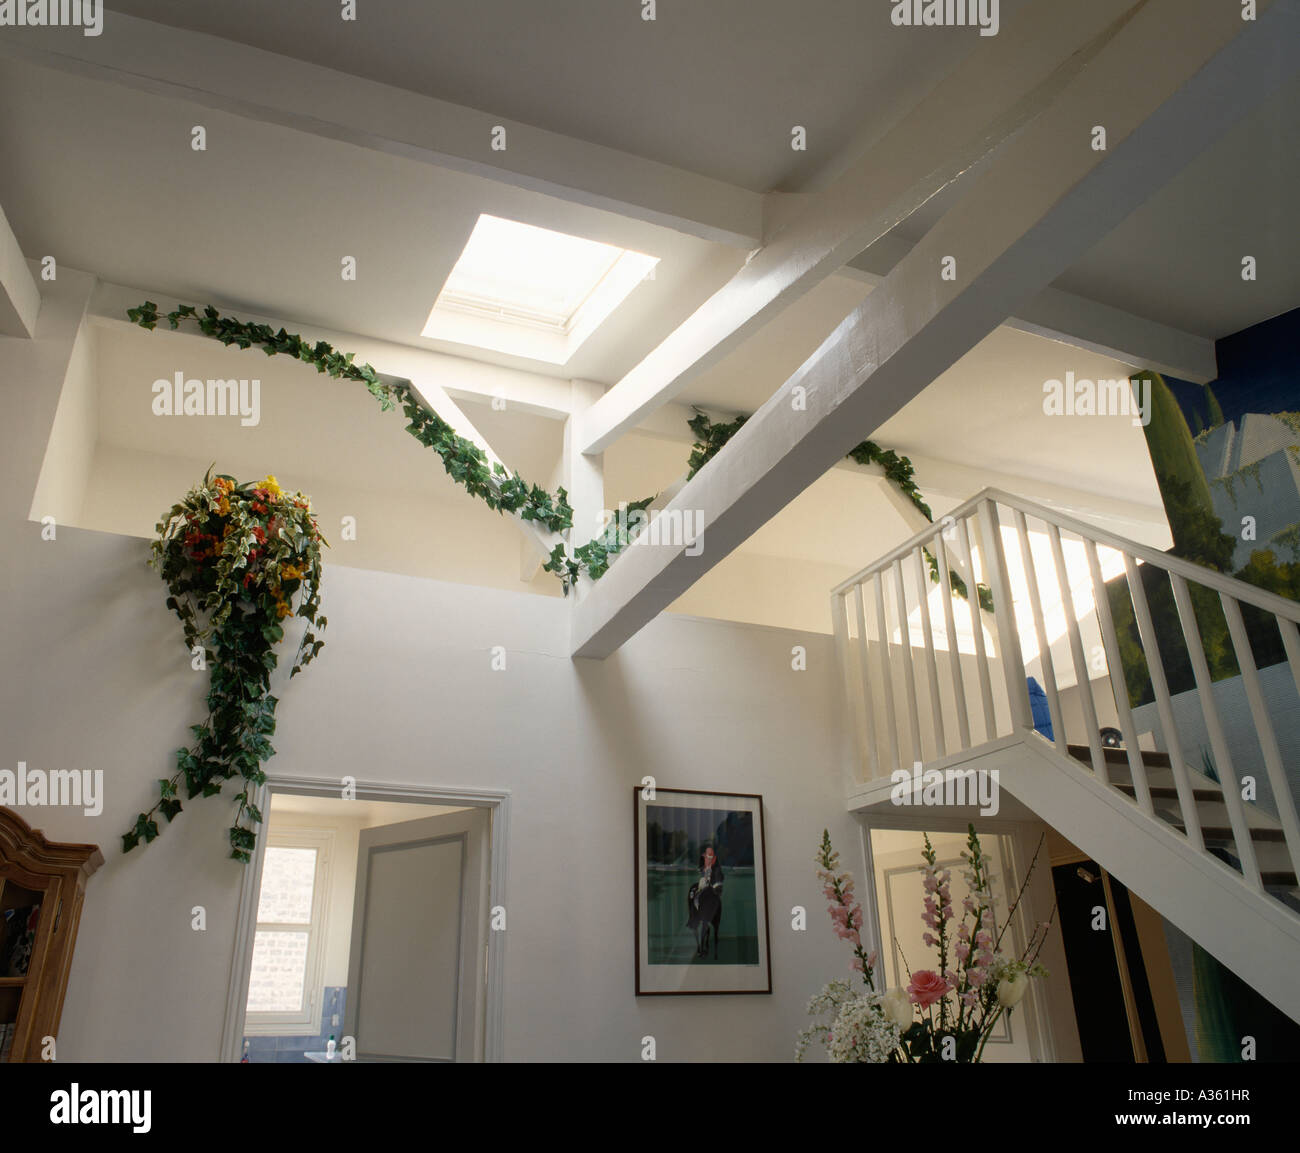 Trailing Green Plants On Landing And Staircase In Modern White Loft  Conversion